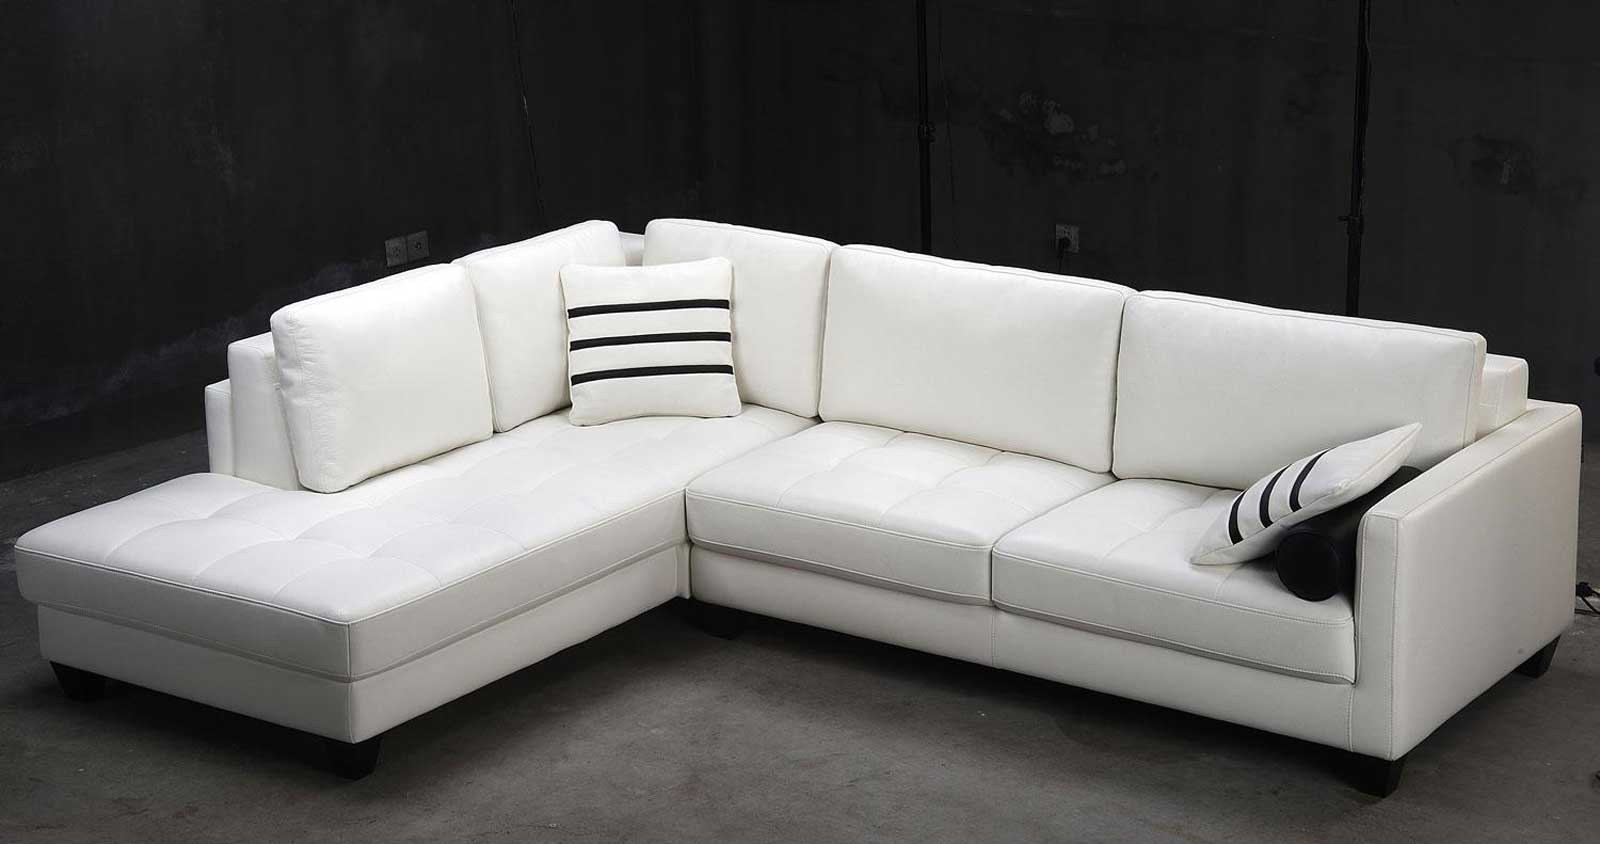 Sofa Set Price Rate Discount Office Furniture Office Furniture Part 2